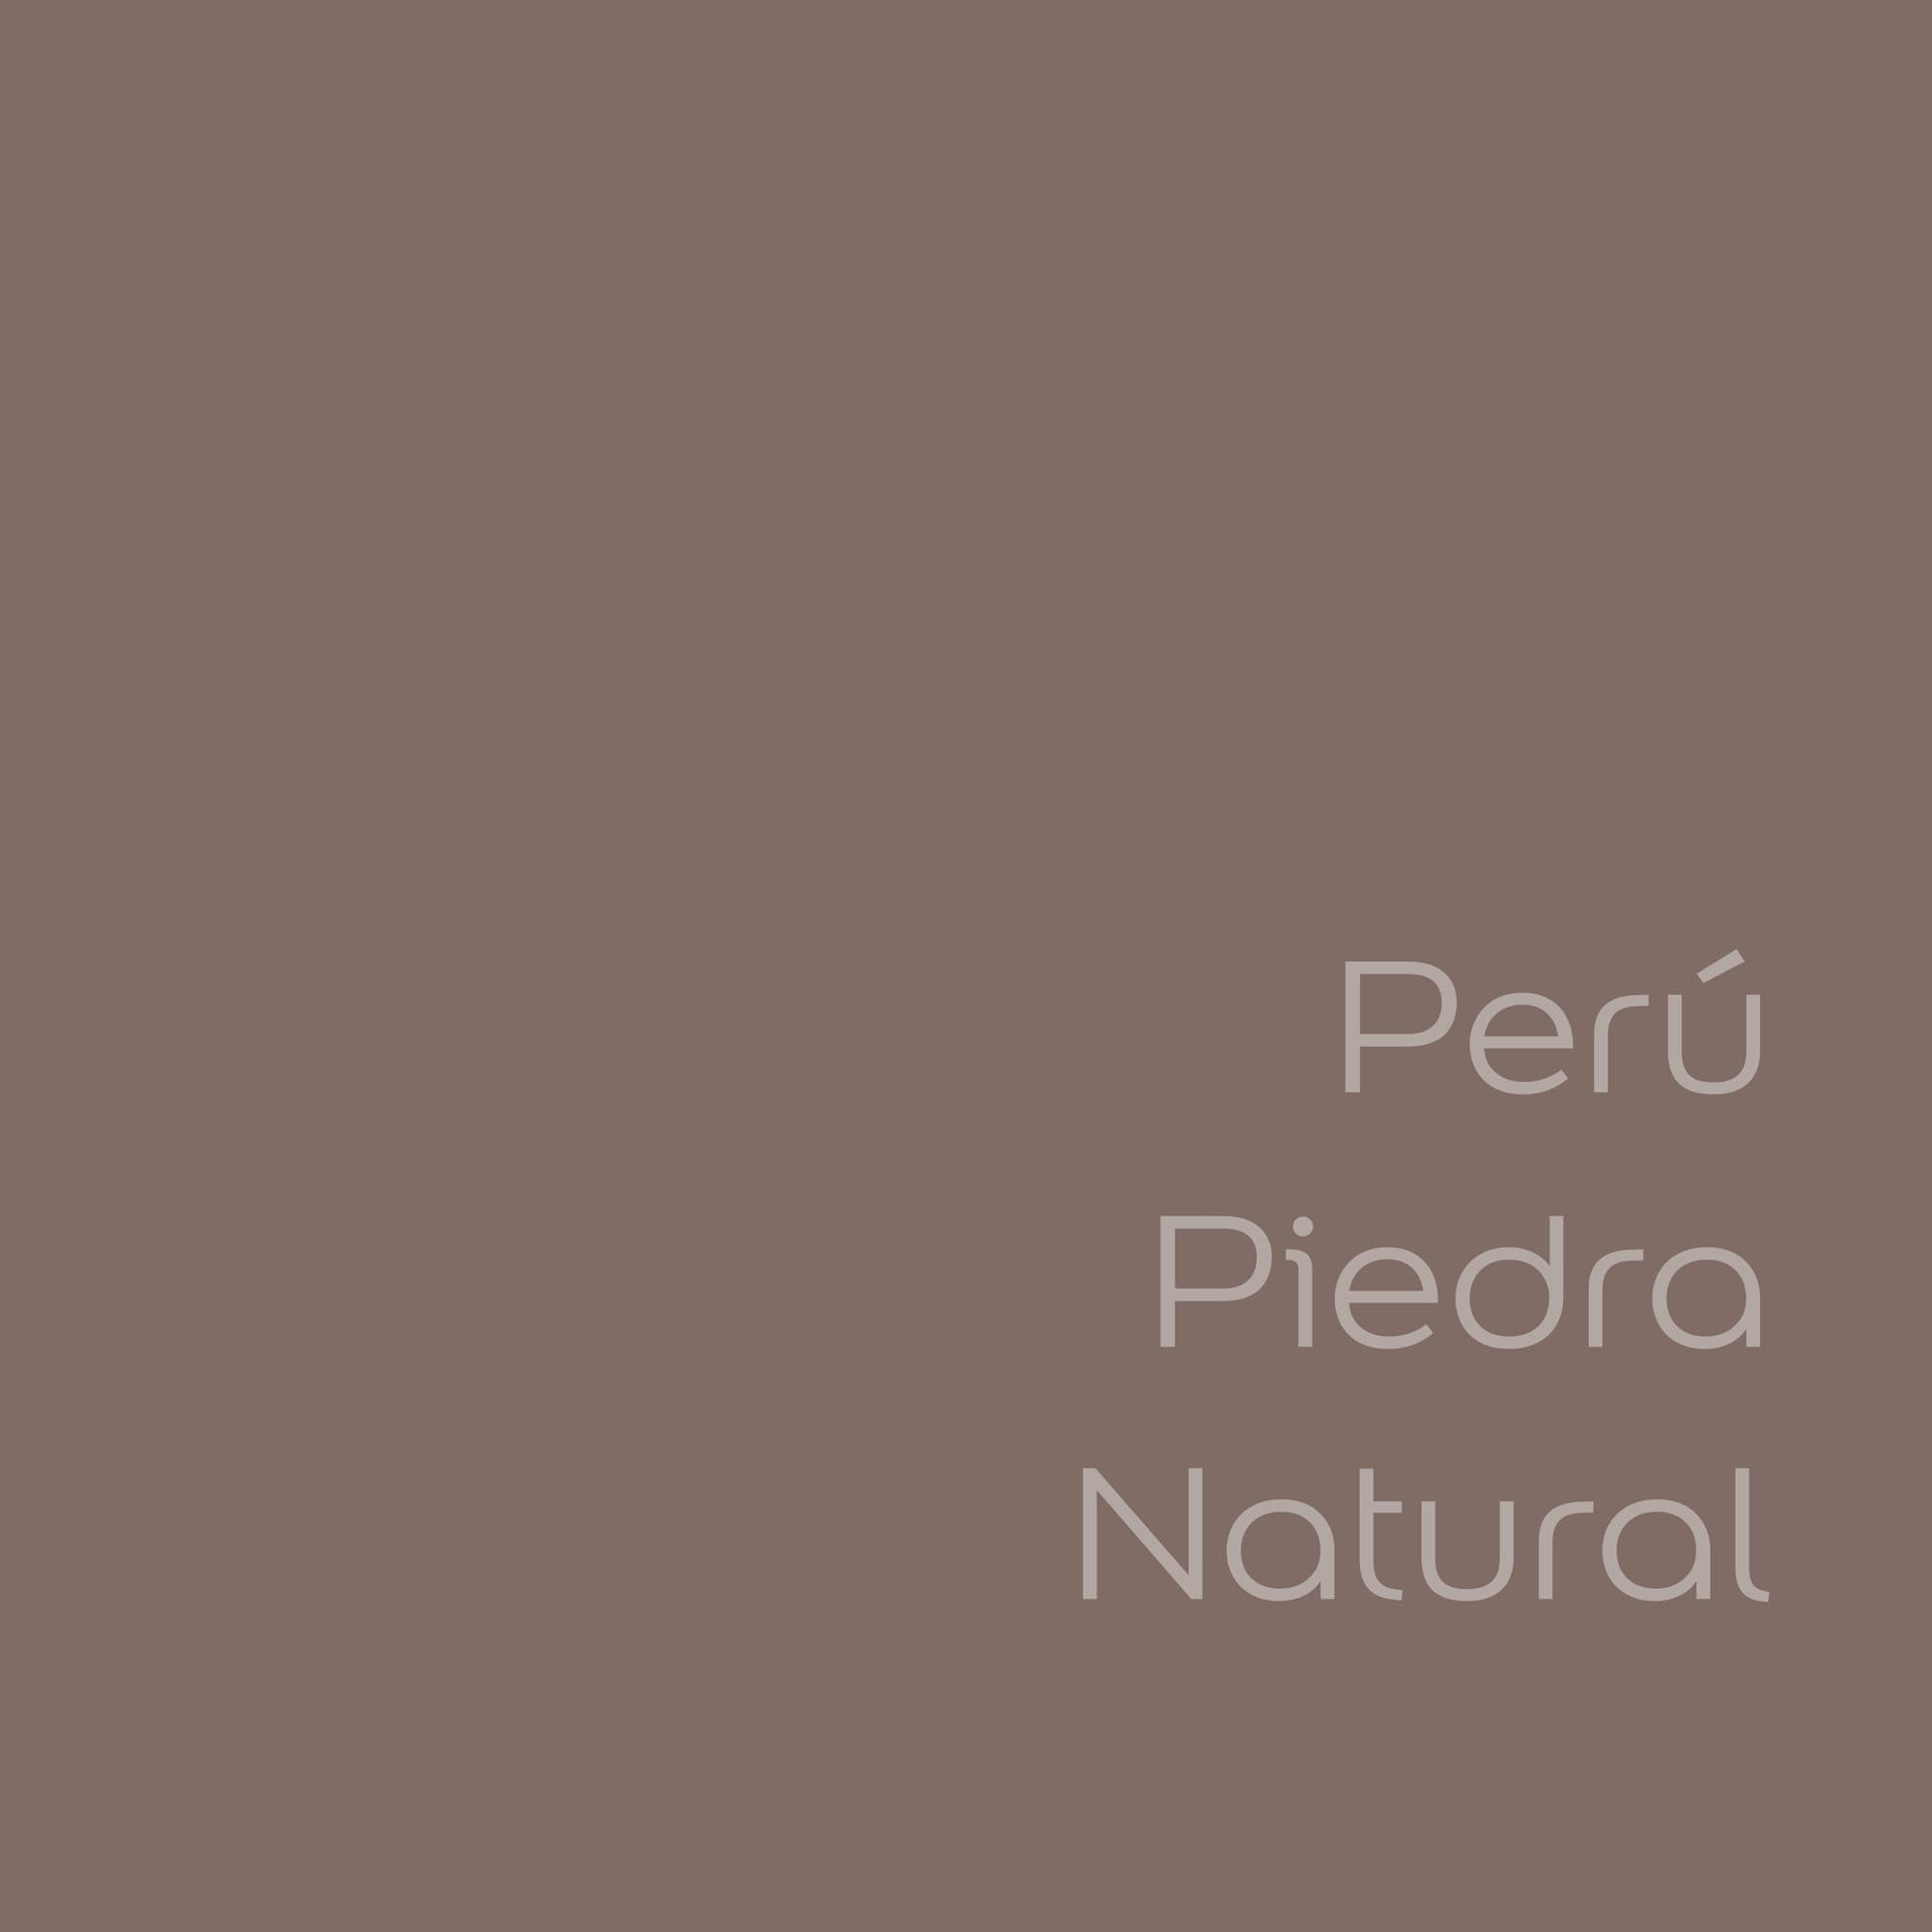 tester de color de pintura bruguer cdm peru piedra natural color